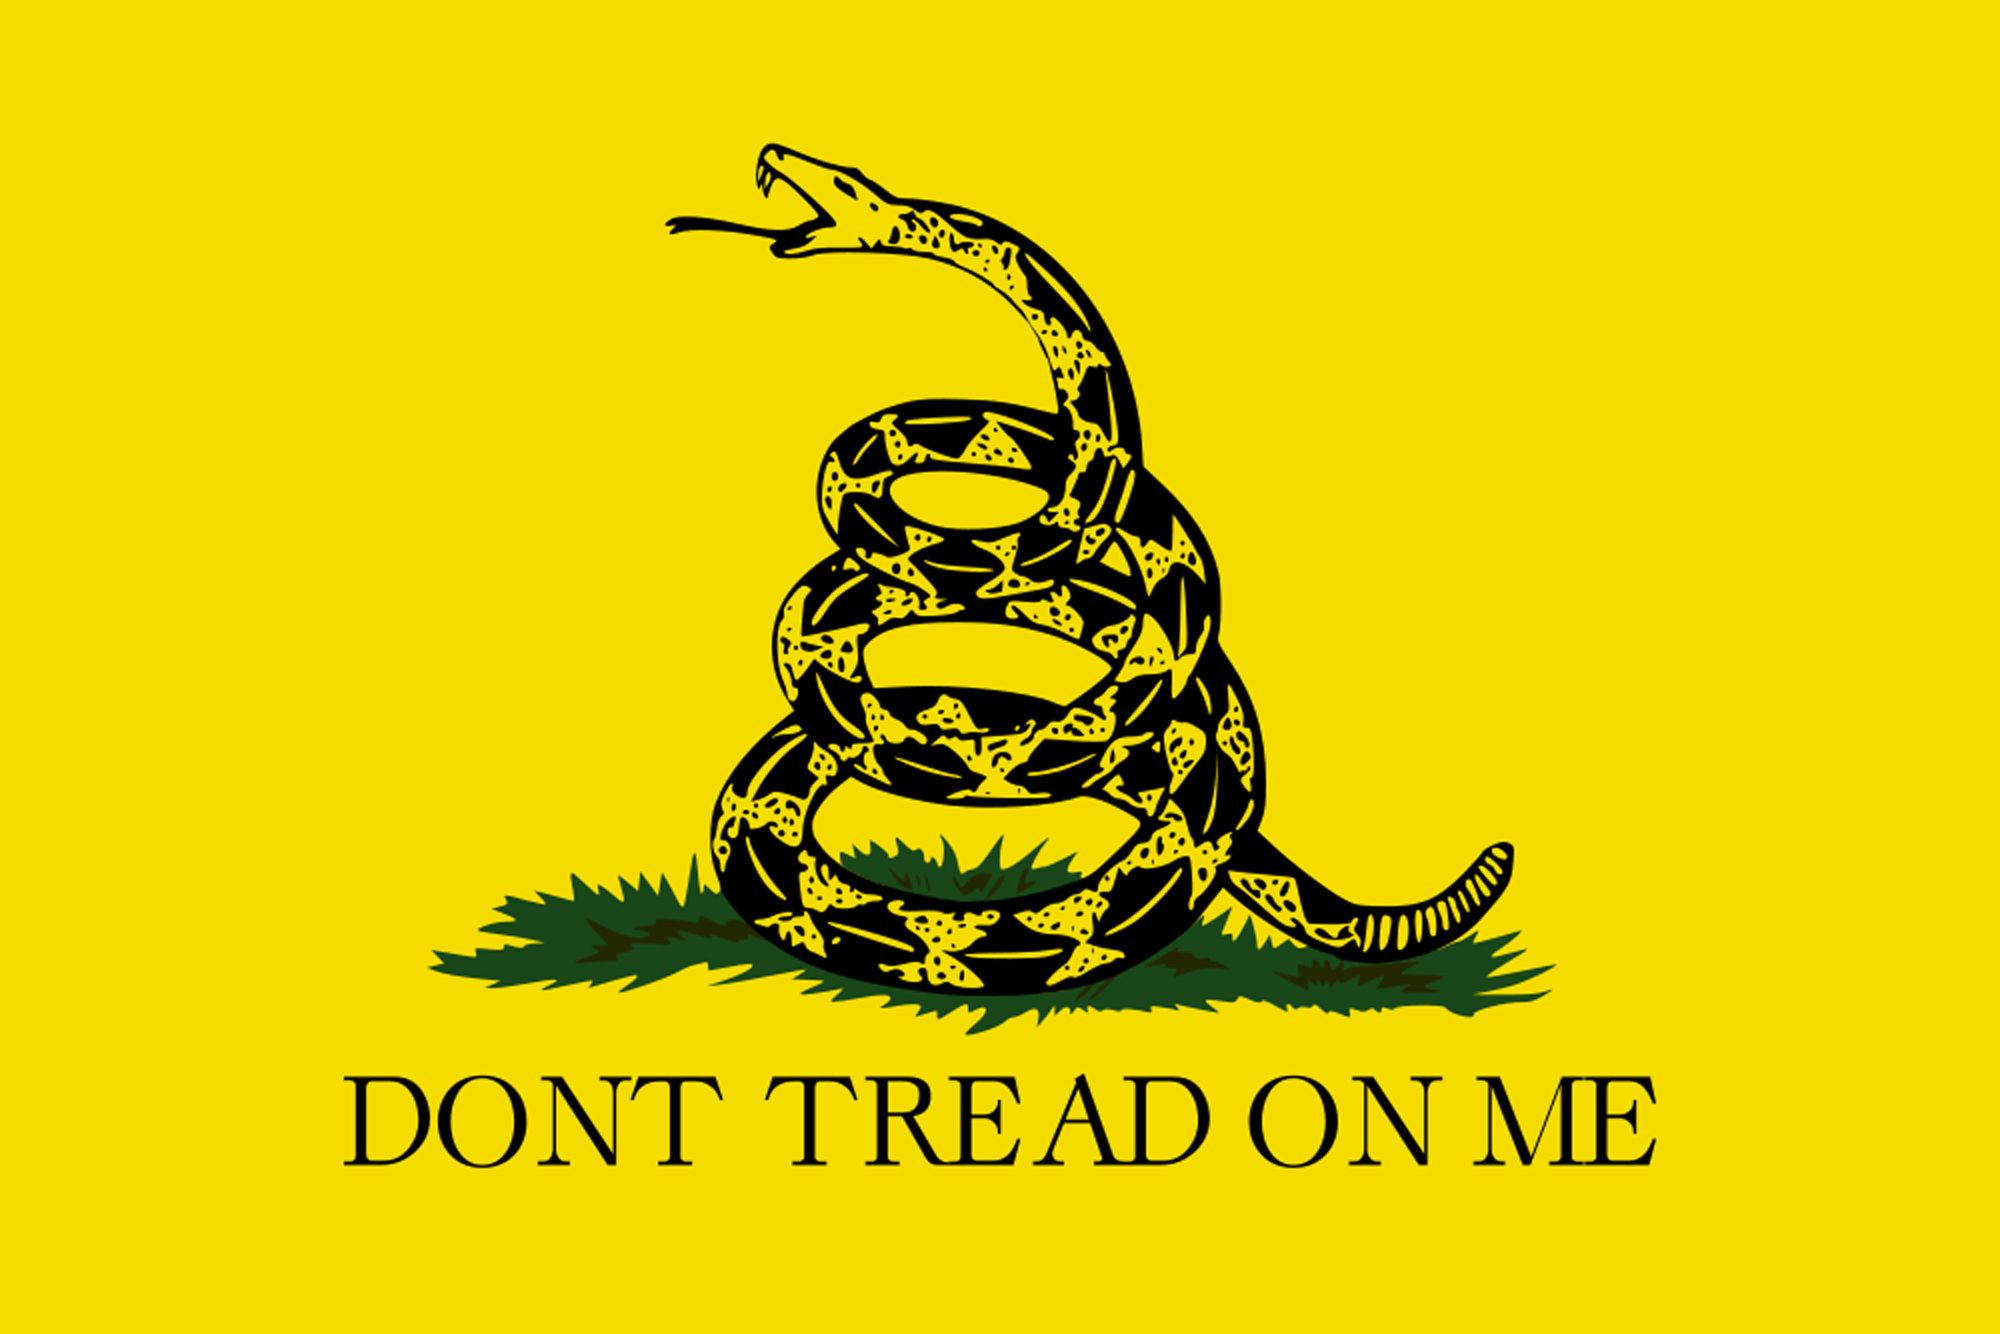 dont-tread-on-me-meaning.jpg 2000×1334 пиксел.